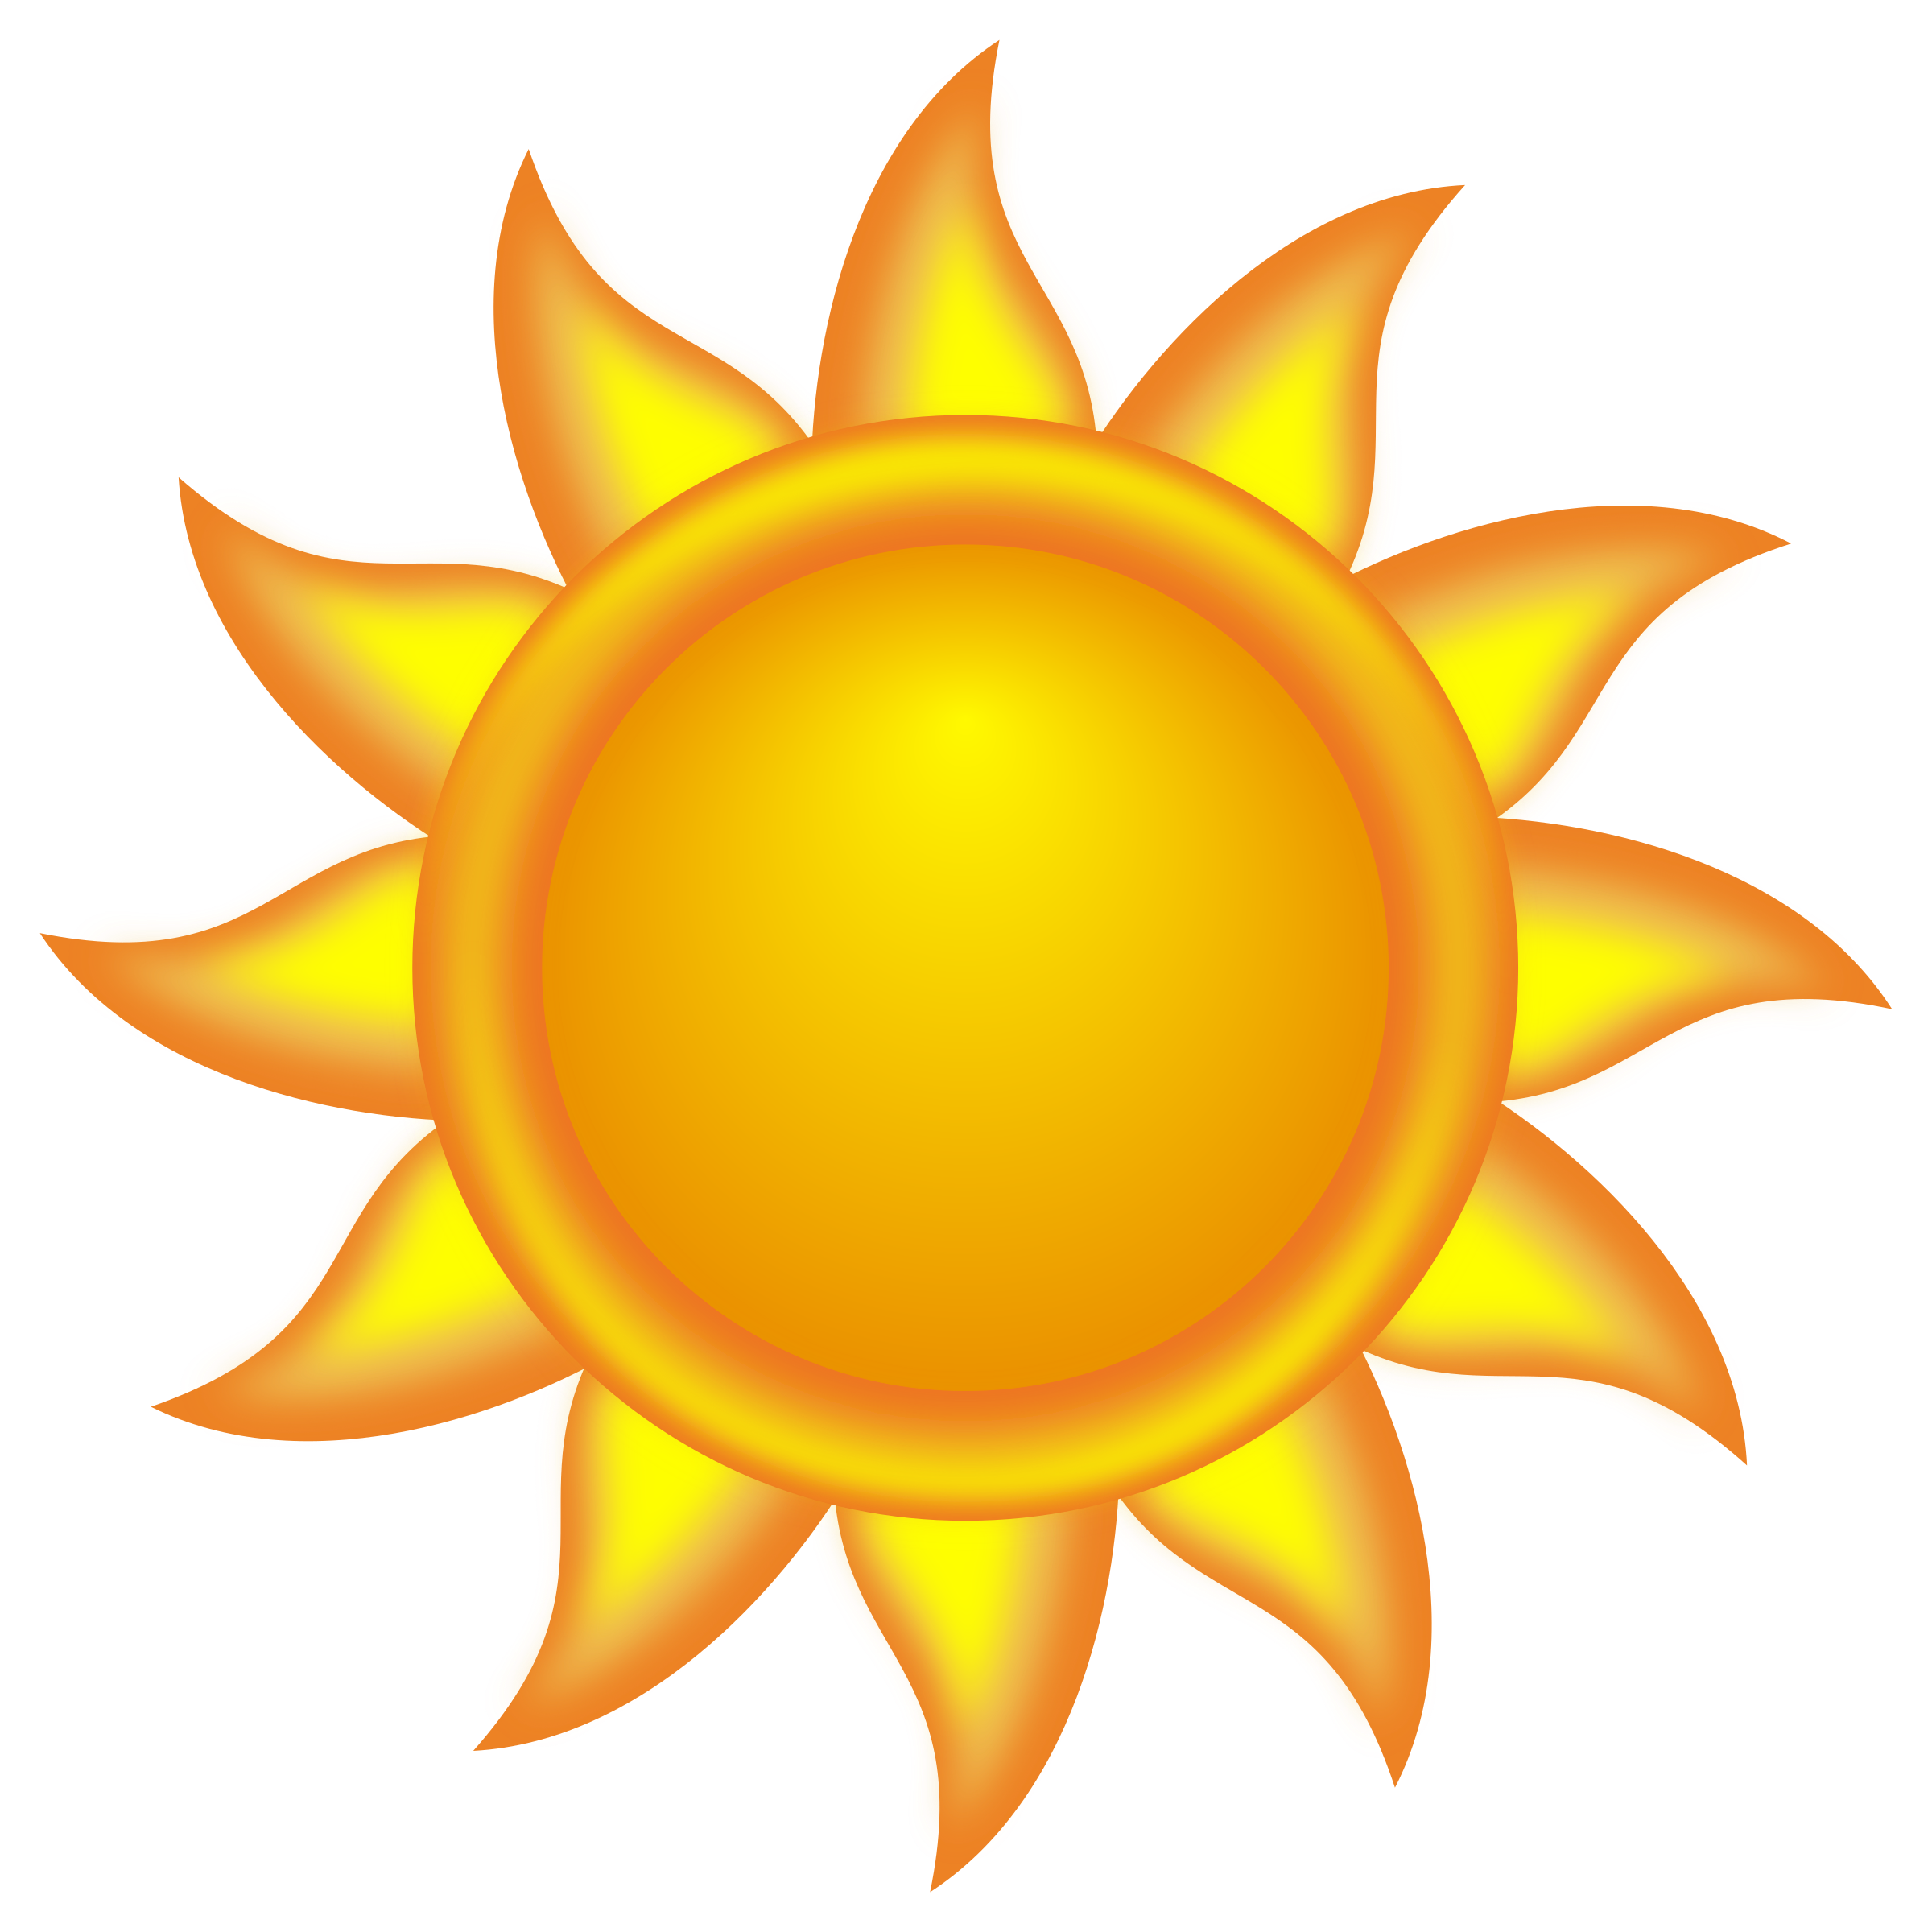 Safe clipart combination. Decorative sun by ivak